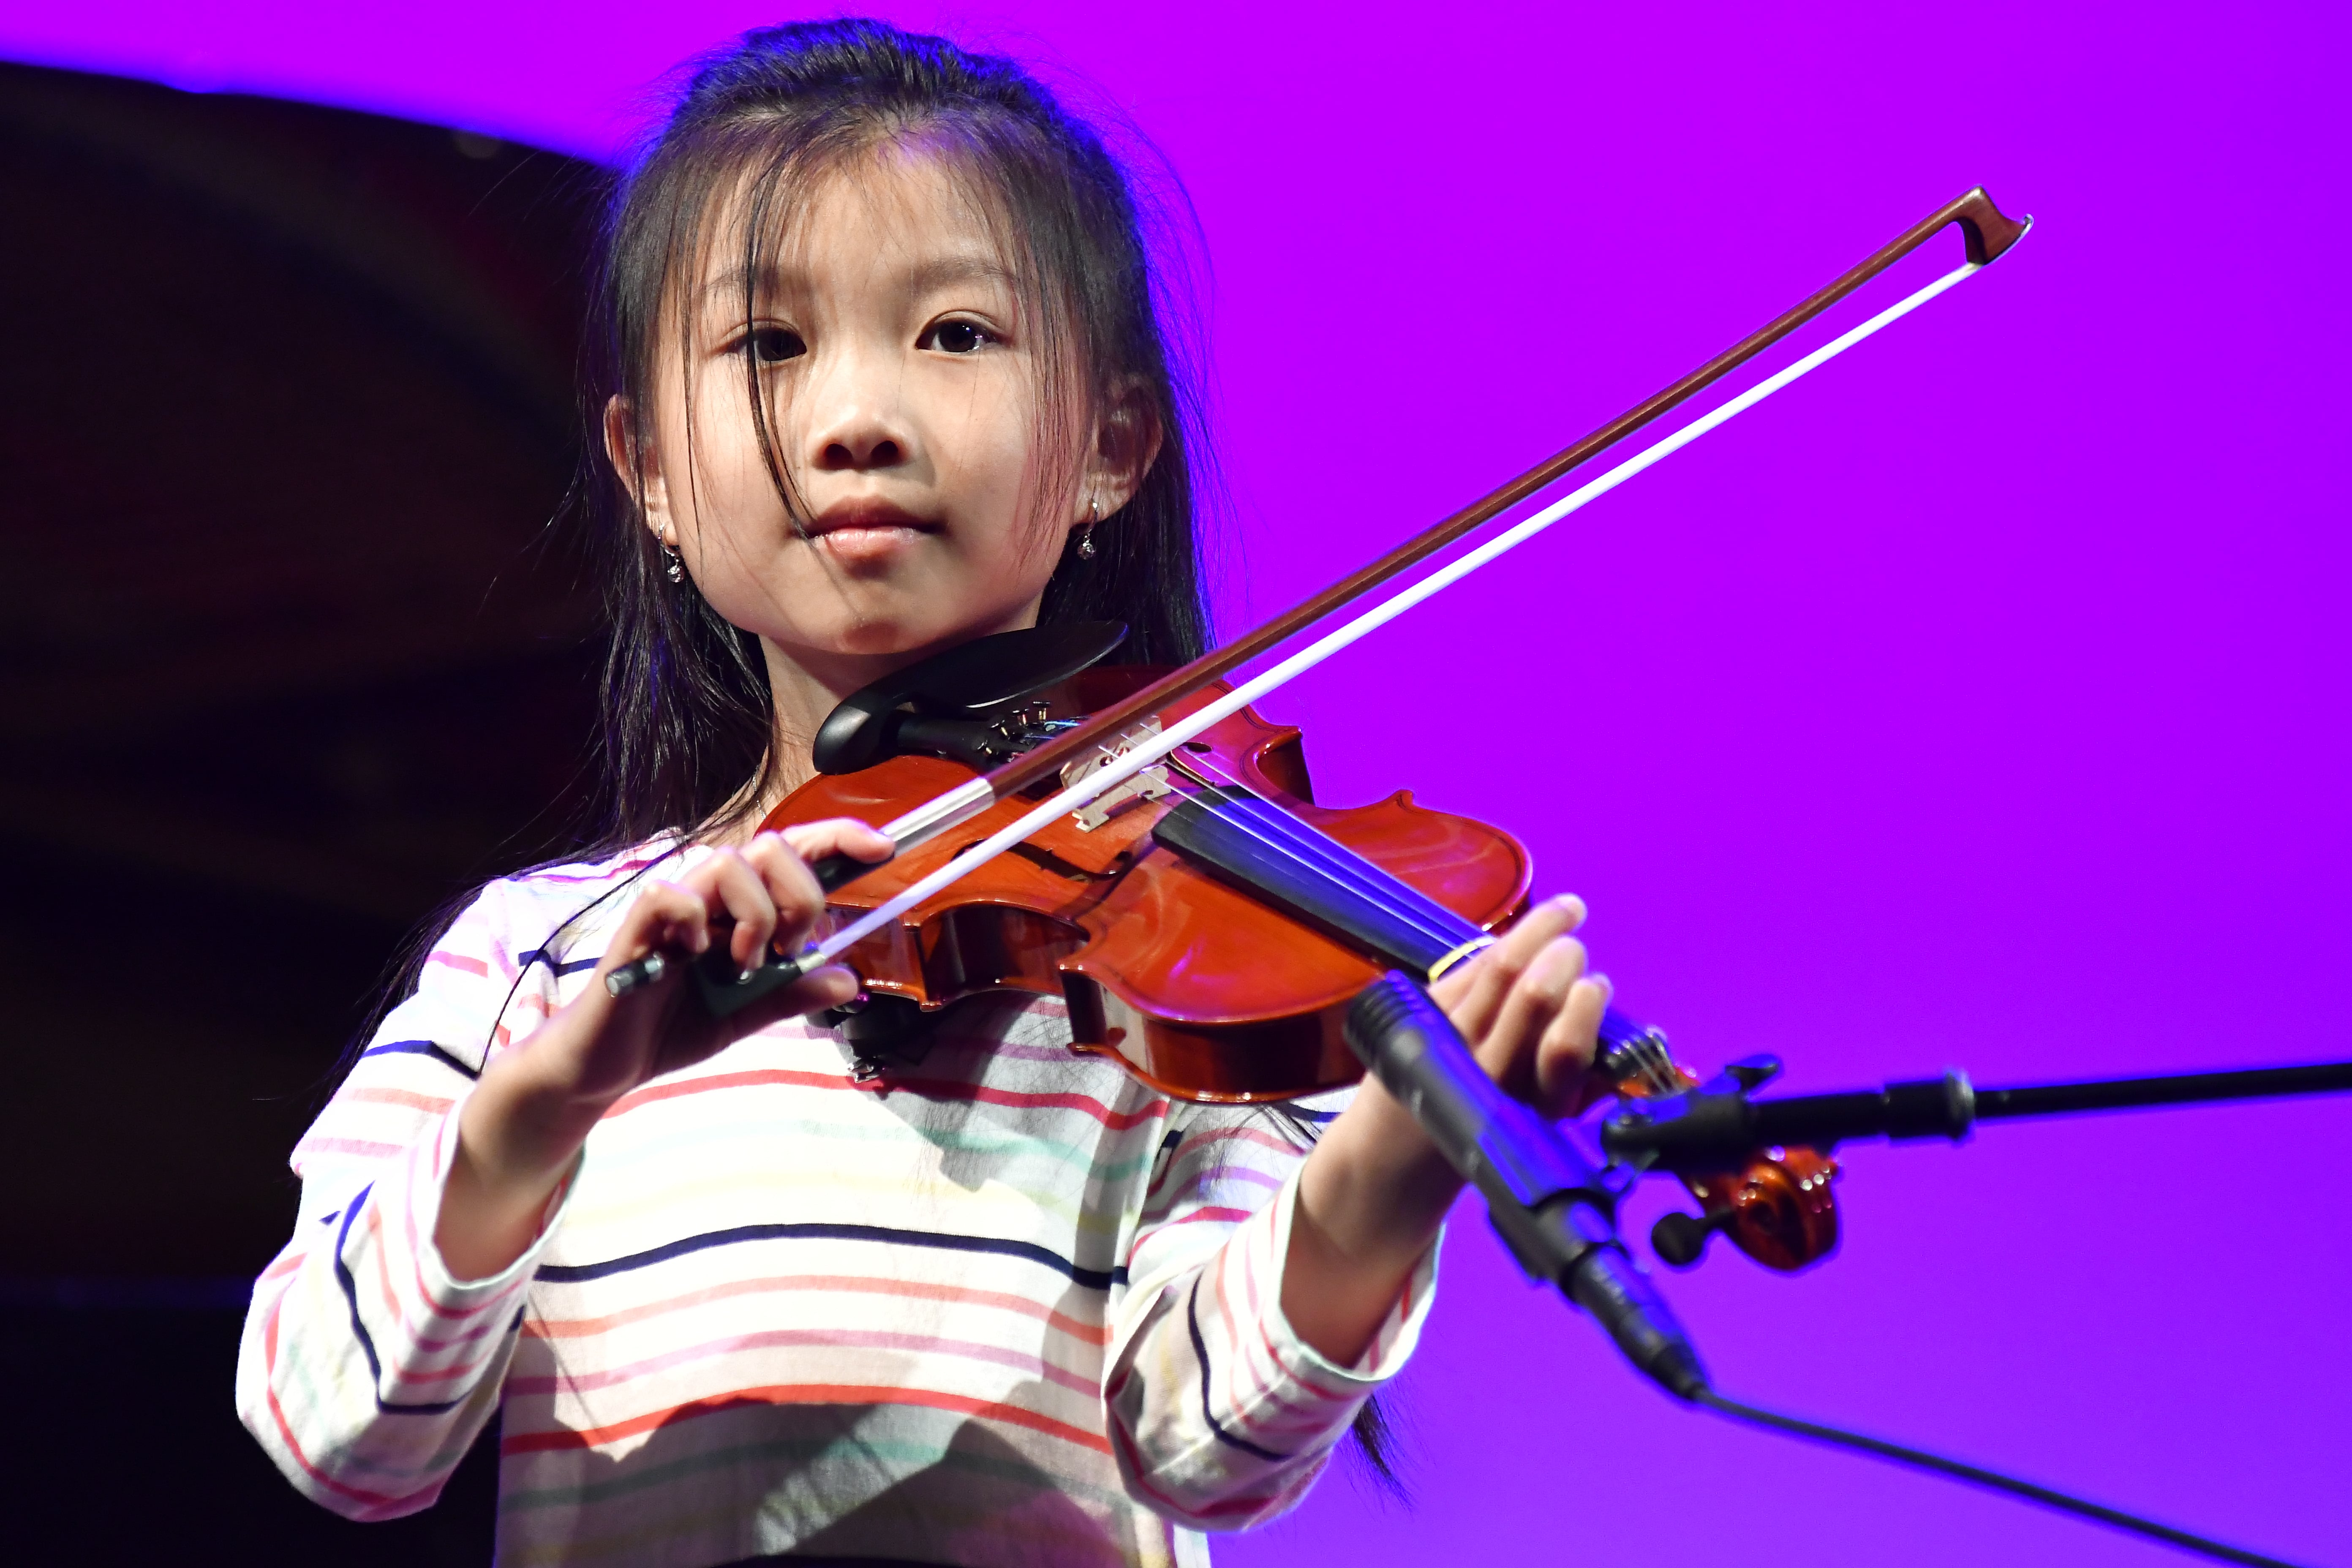 violin cello lessons for kids and adults near me in castro valley ca